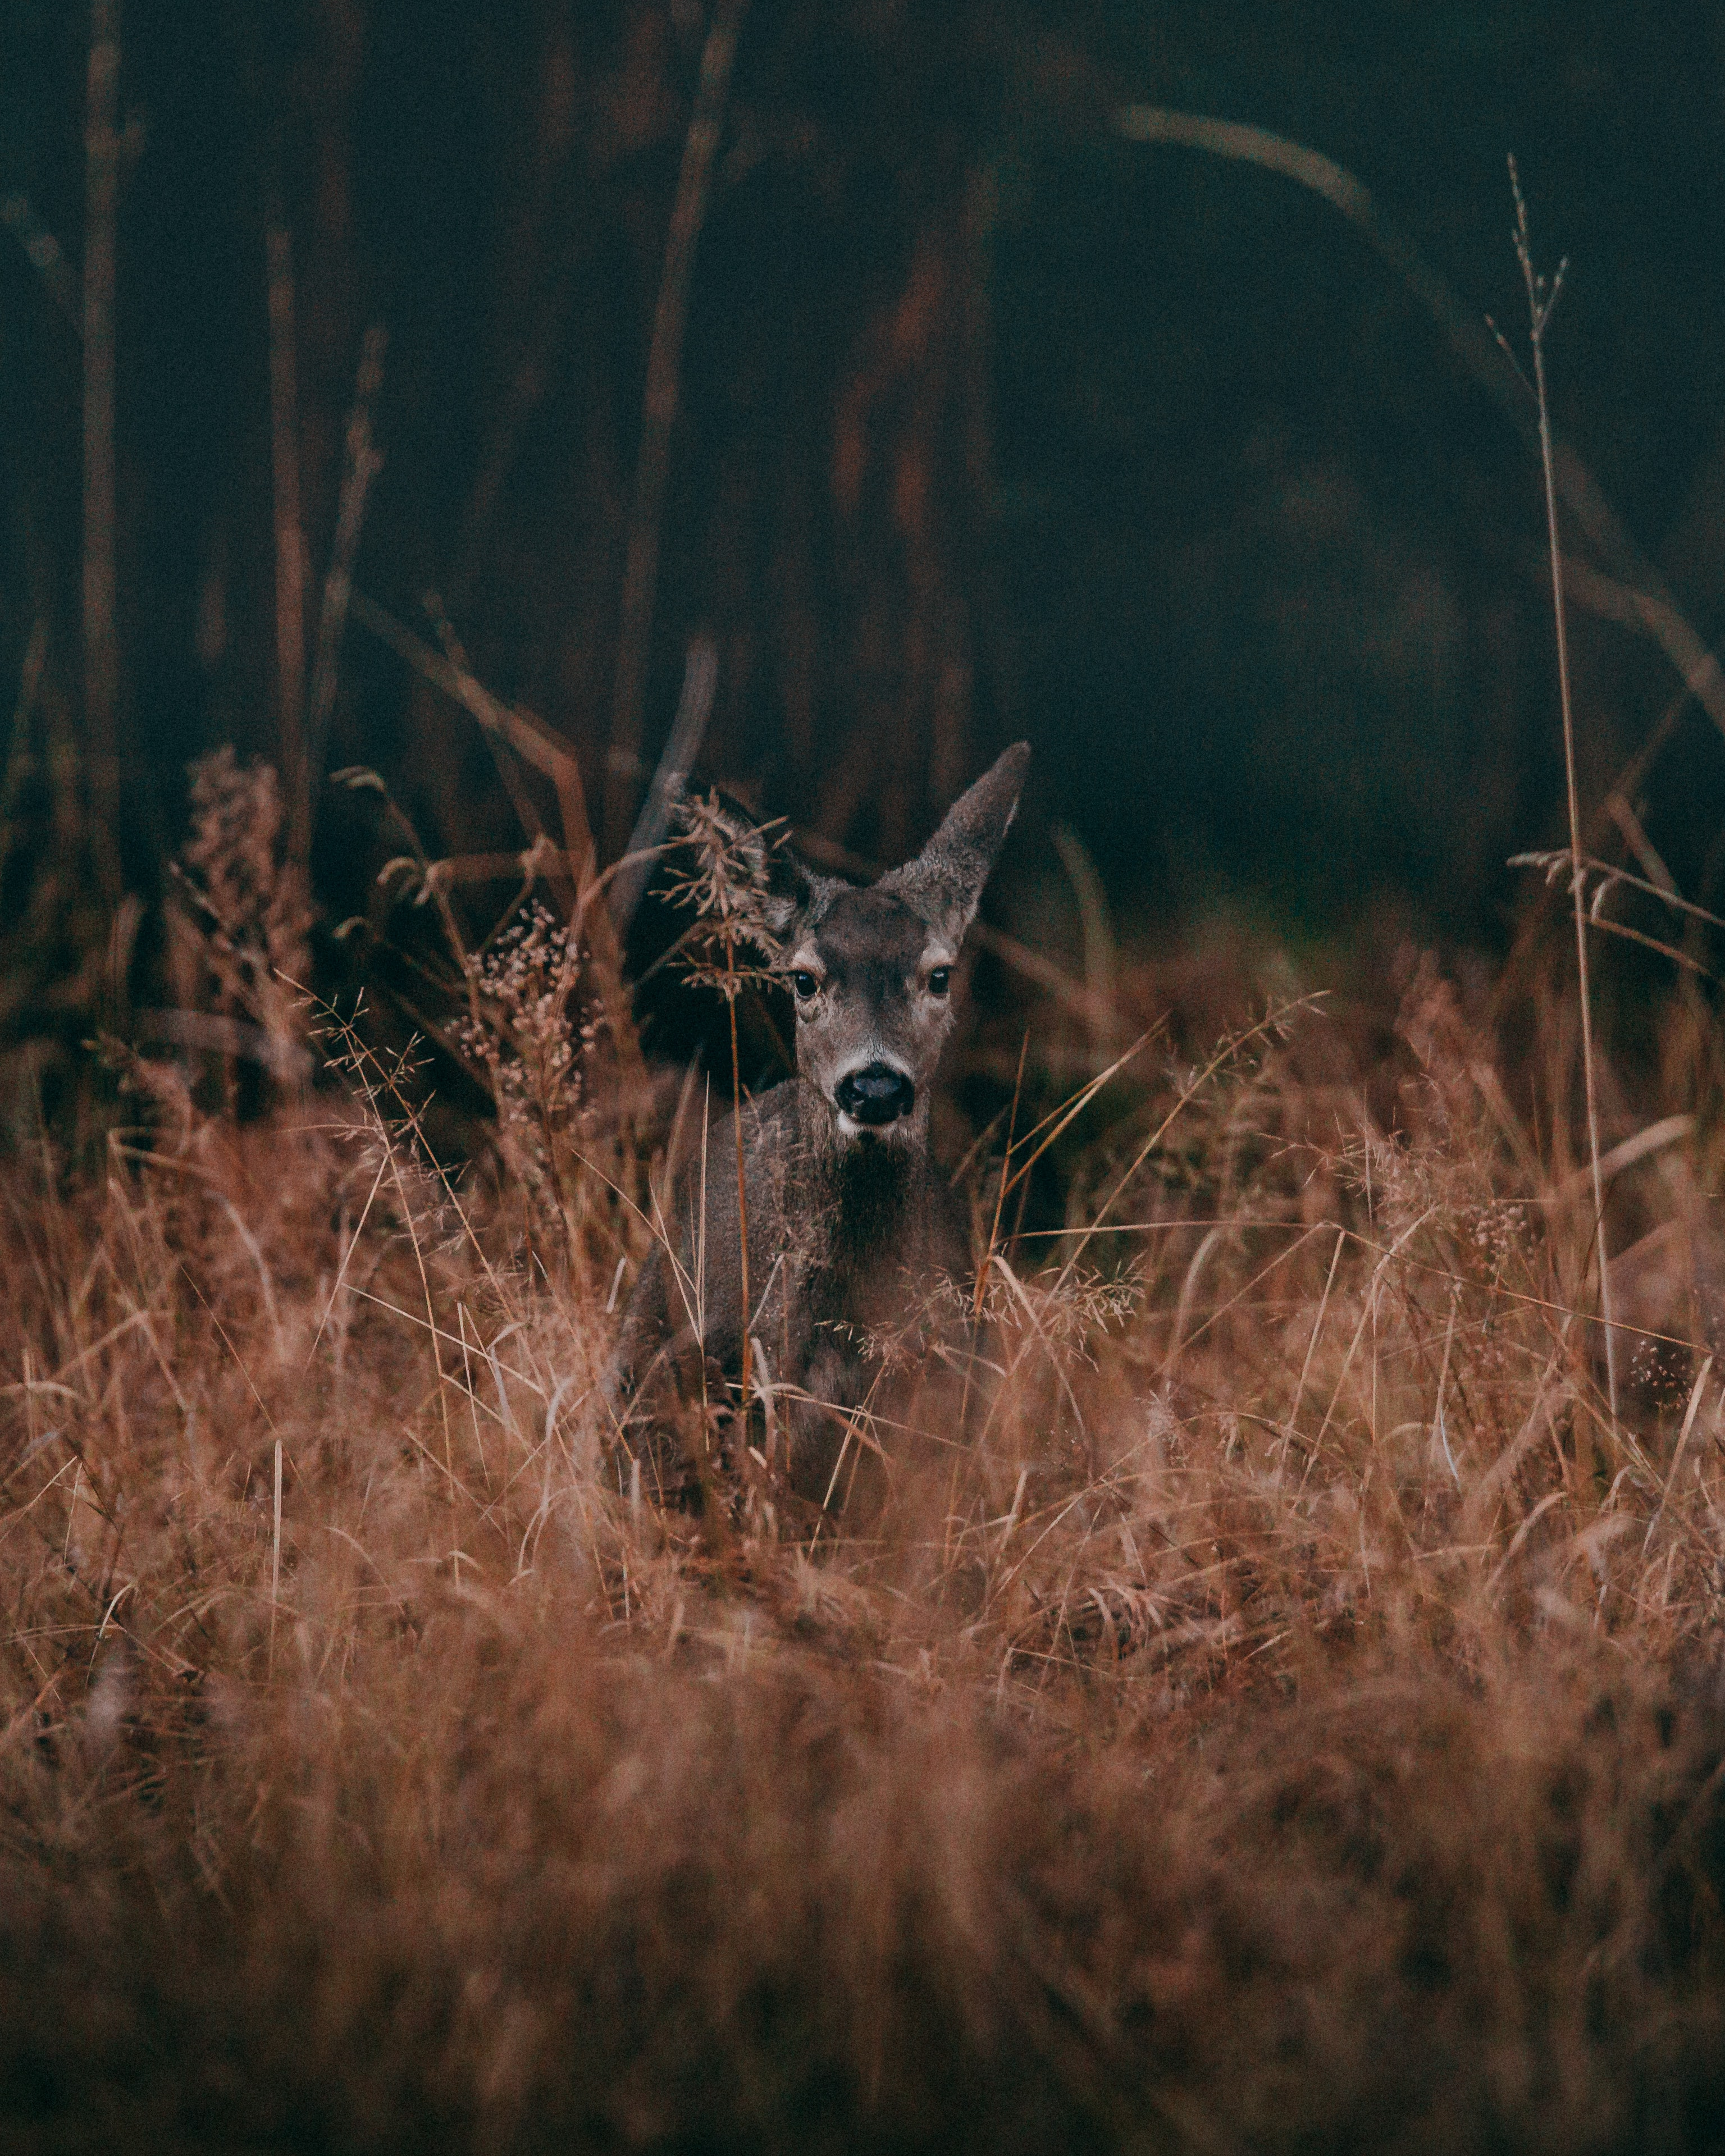 wildlife photography of gray deer surrounded by grass